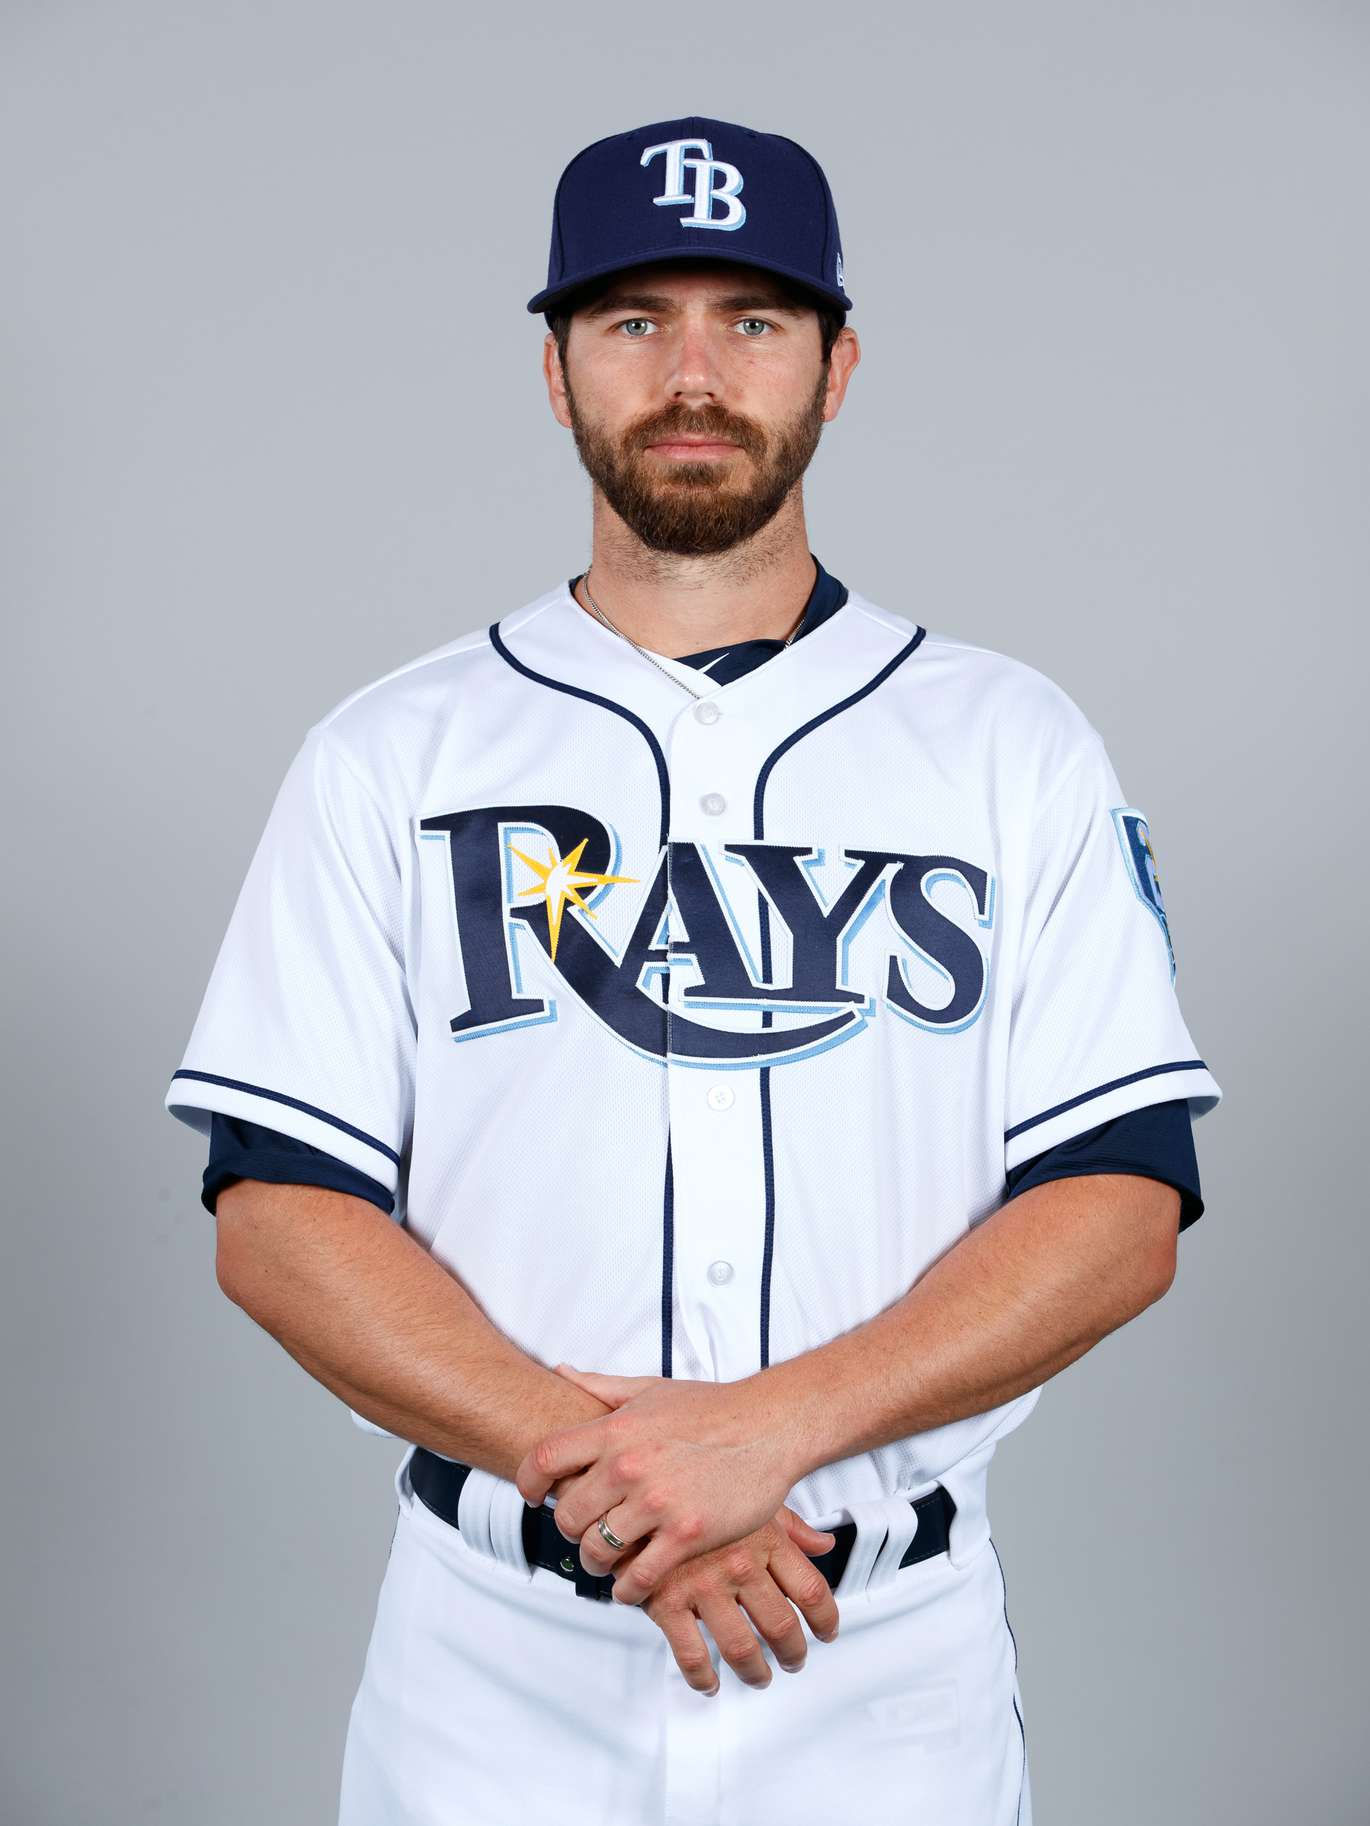 25. Austin Pruitt, rhp, No. 50: Called back from Triple-A after news of Nathan Eovaldi injury, joins crew of multi-inning relievers who will be used in various roles.